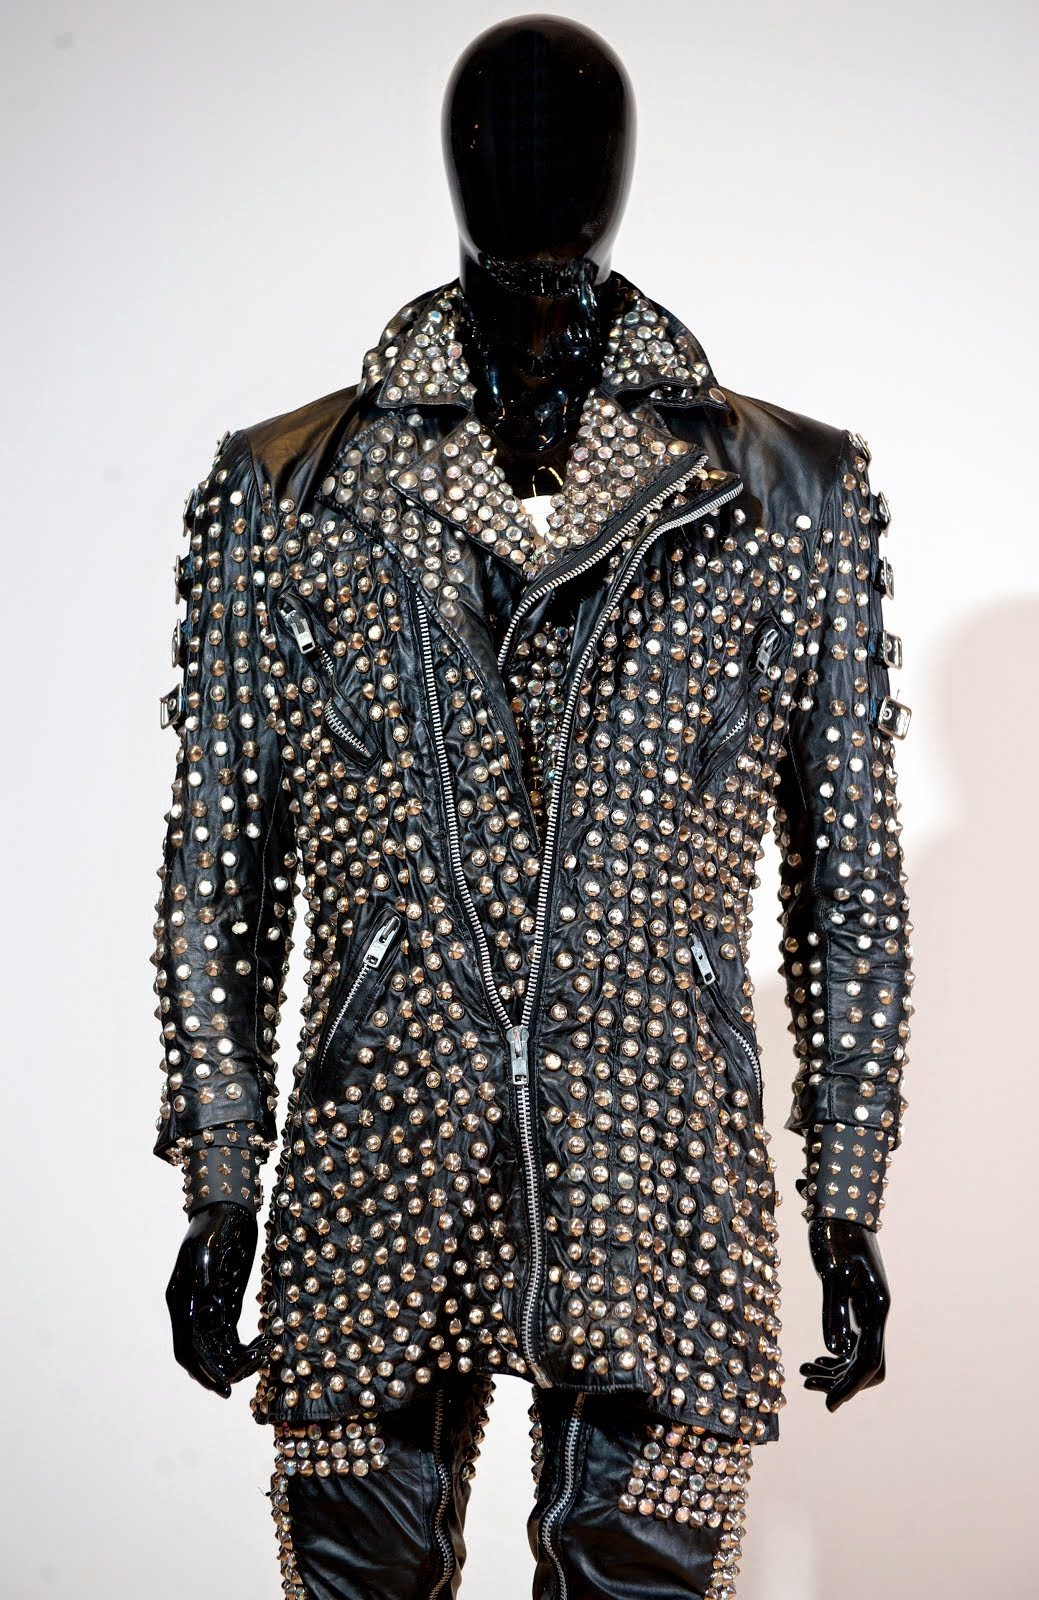 Rob Halford - Leather studded outfit